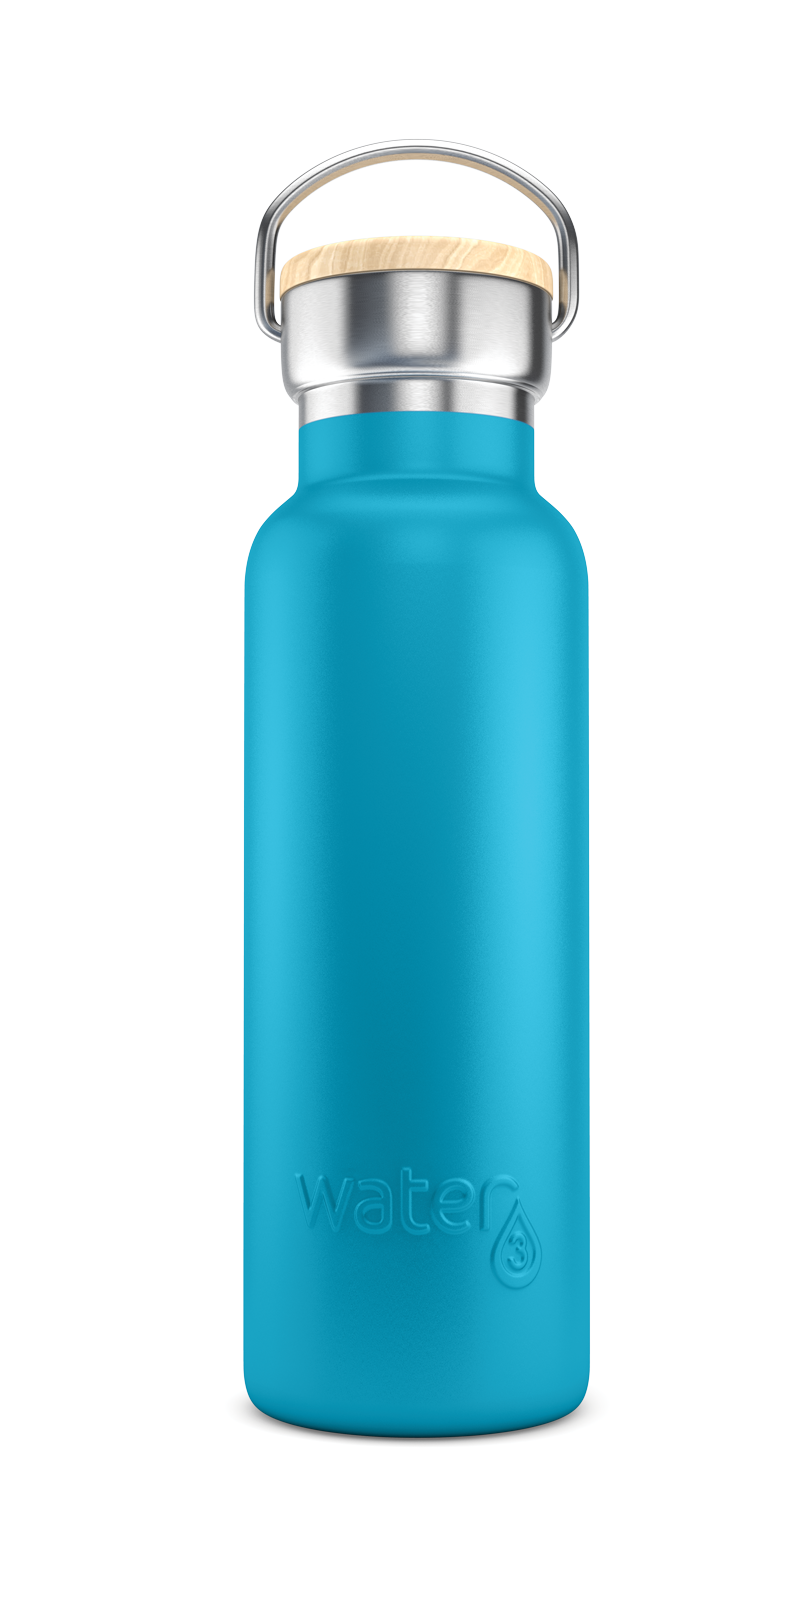 Water3 500ml Stainless Steel Insulated Bottle - Bells Blue